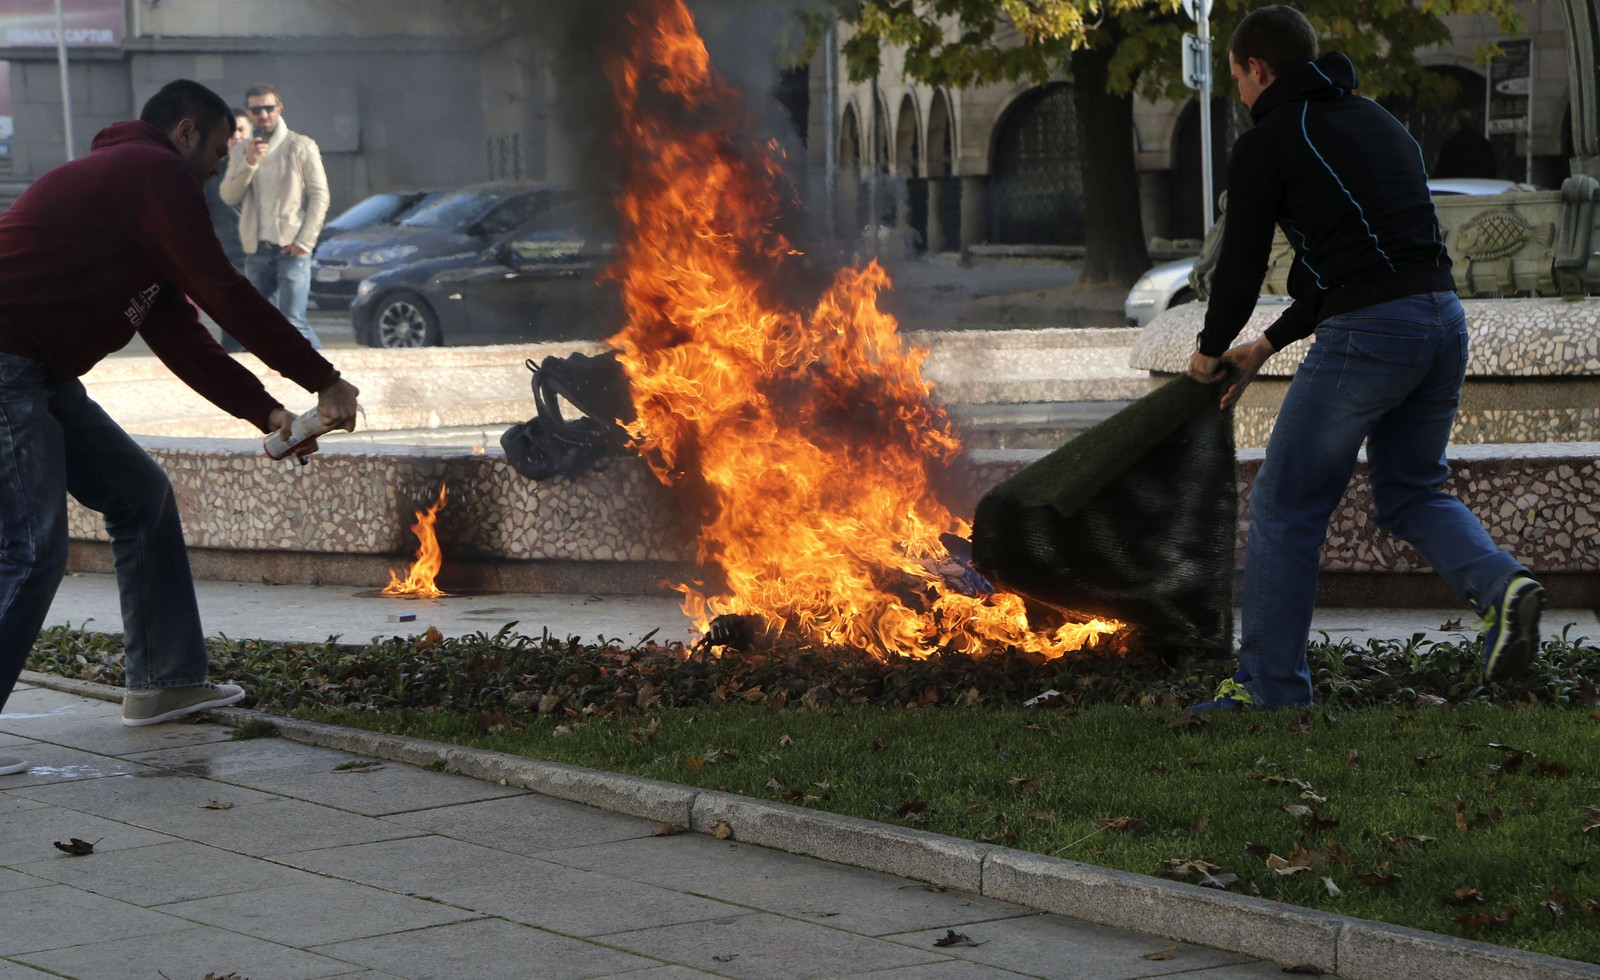 People try to save a woman who set her self on fire in front of the Presidency building in Sofia on November 3, 2014. A woman set herself on fire outside Bulgaria's presidential headquarters in Sofia on Monday, in a repeat of a series of self-immolations driven by poverty in the crisis-hit Balkan country last year, the interior ministry said. Live television footage showed firefighters carrying a burned woman on a stretcher and loading her into an ambulance.The victim, a 38-year-old woman according to the ministry, was badly burned but alive, the hospital said.